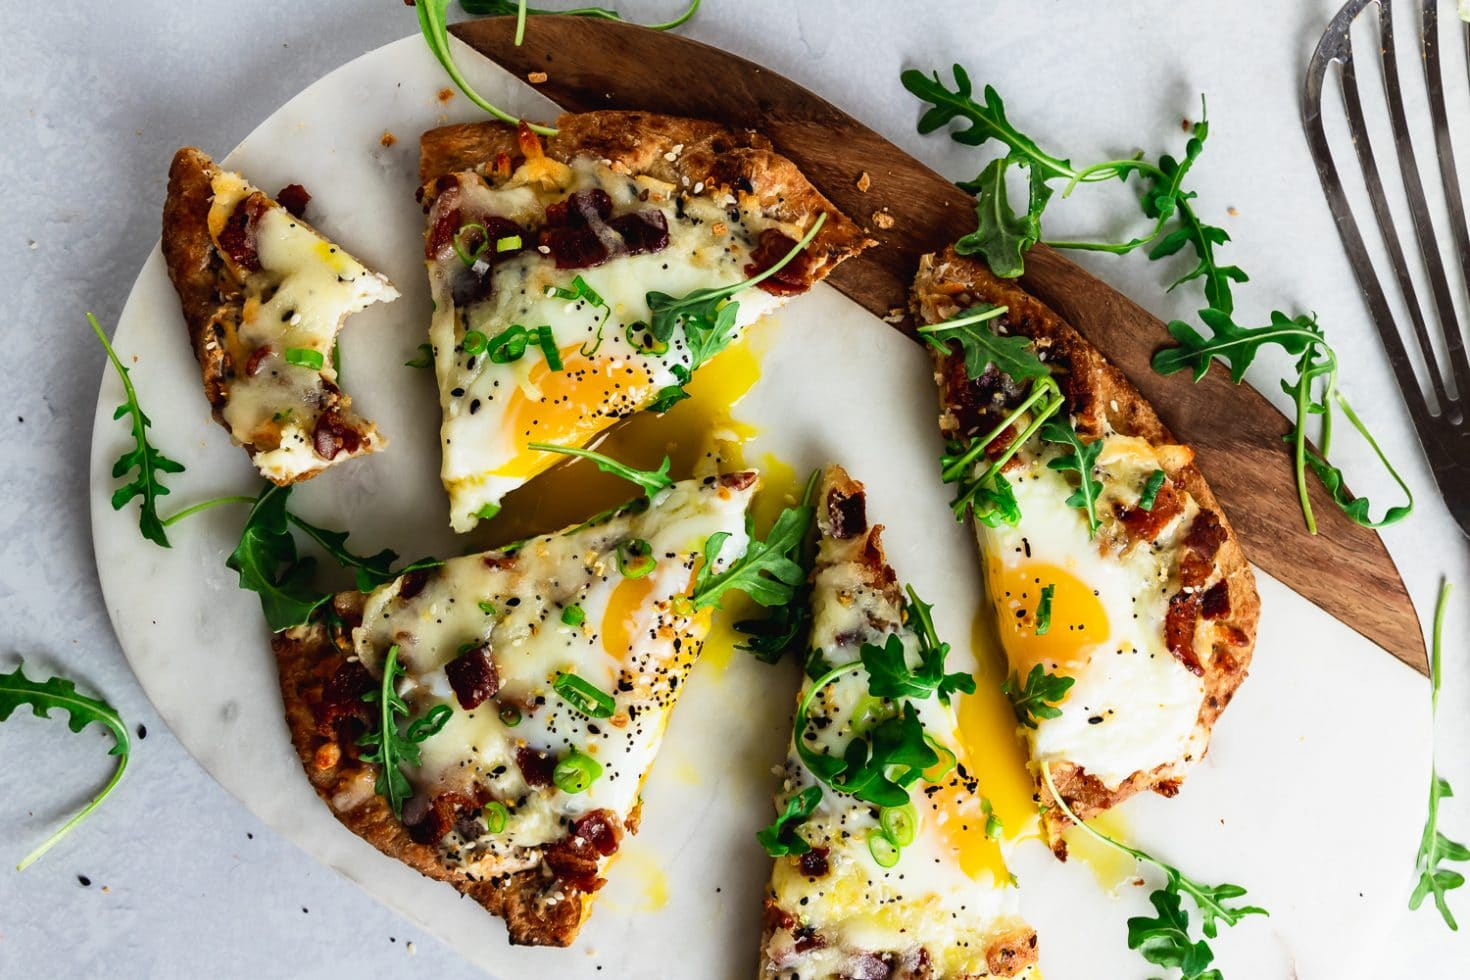 marble and wood board with sliced breakfast pizza with runny egg, arugula, and thin metal spatula